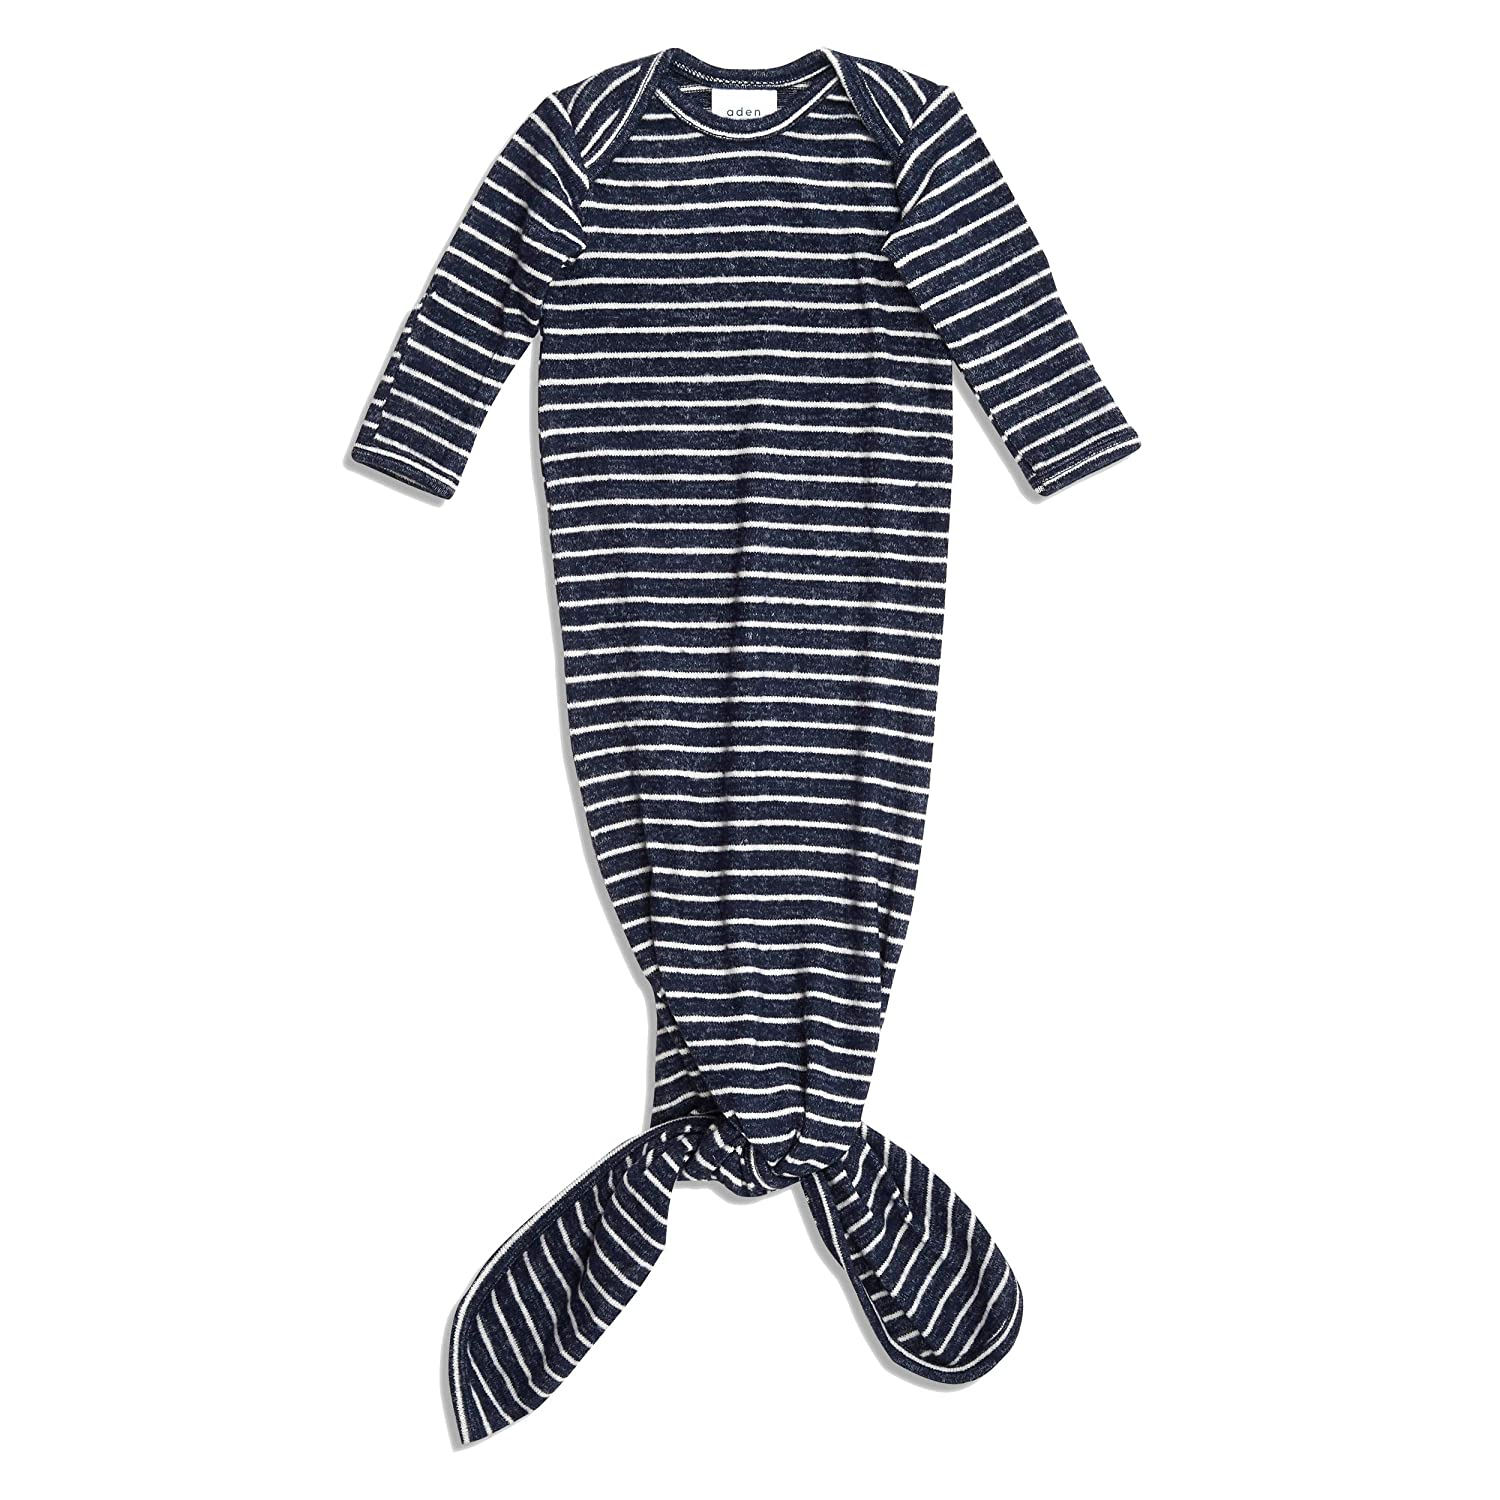 anais Snuggle Knit Knotted Newborn Baby Gown Super Soft and Stretchy Gown with Mitten Cuffs aden Navy Stripe 0-3 Months